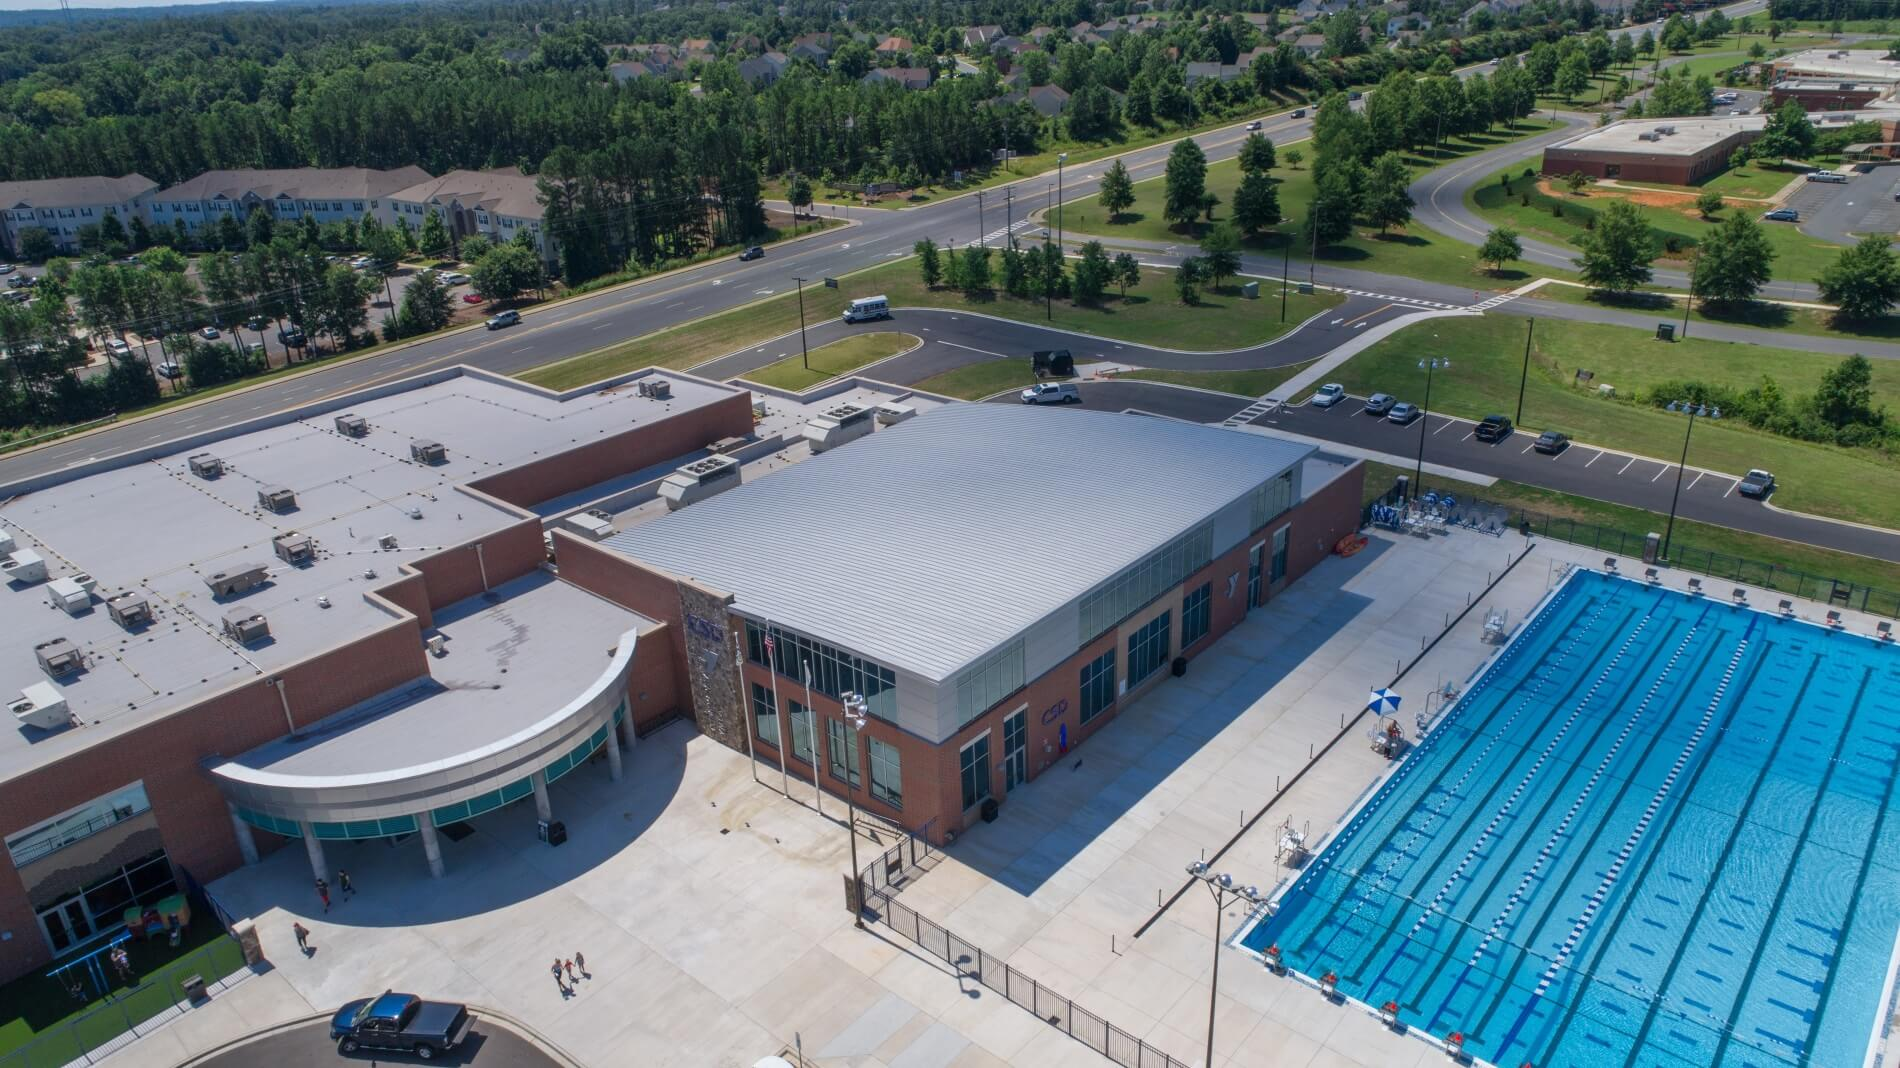 South Carolina YMCA Features Curved Standing Seam Roof by McElroy Metal